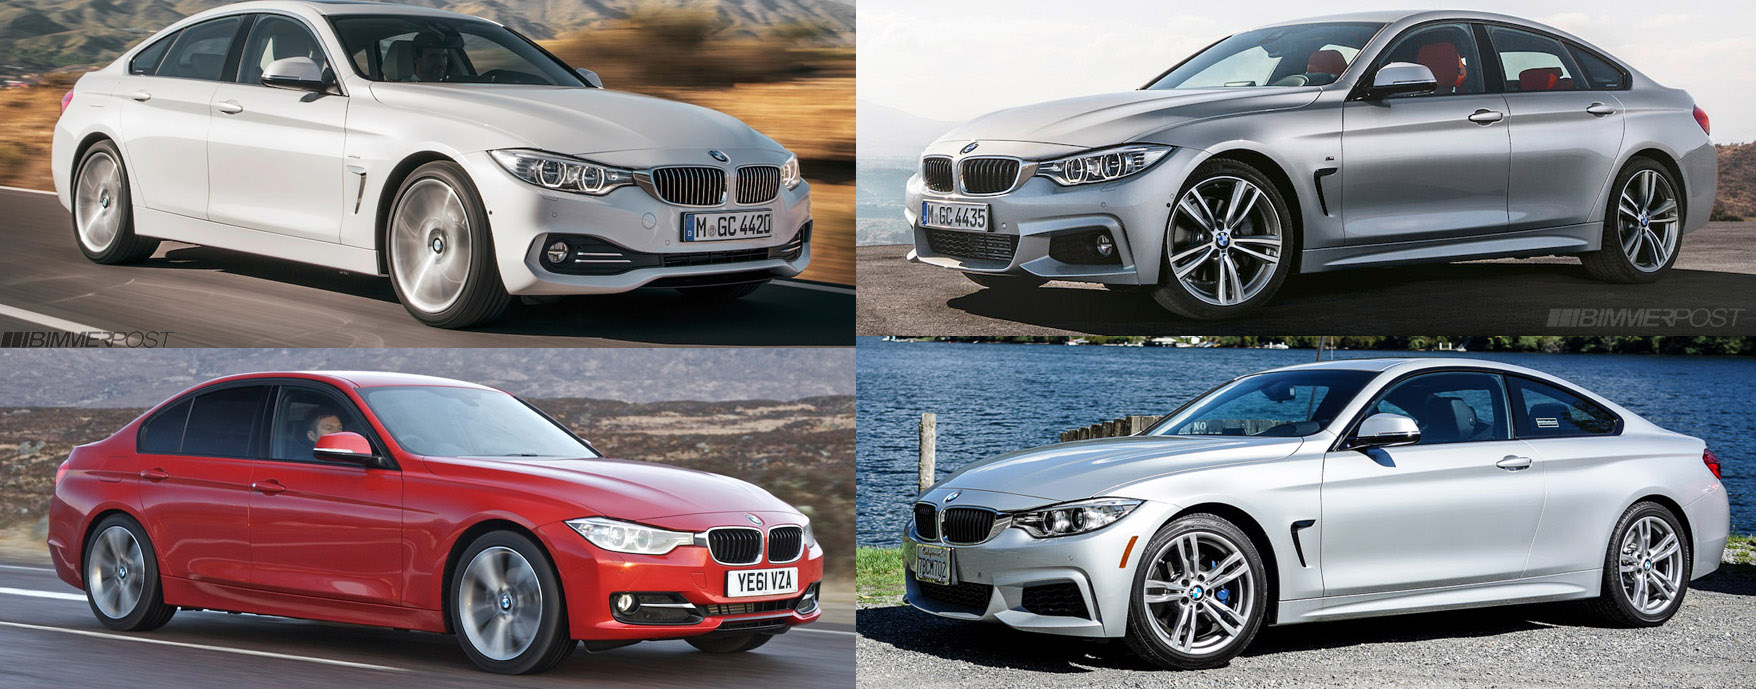 Comparo Bmw 4 Series Gran Coupe Vs 3 Series Sedan F30